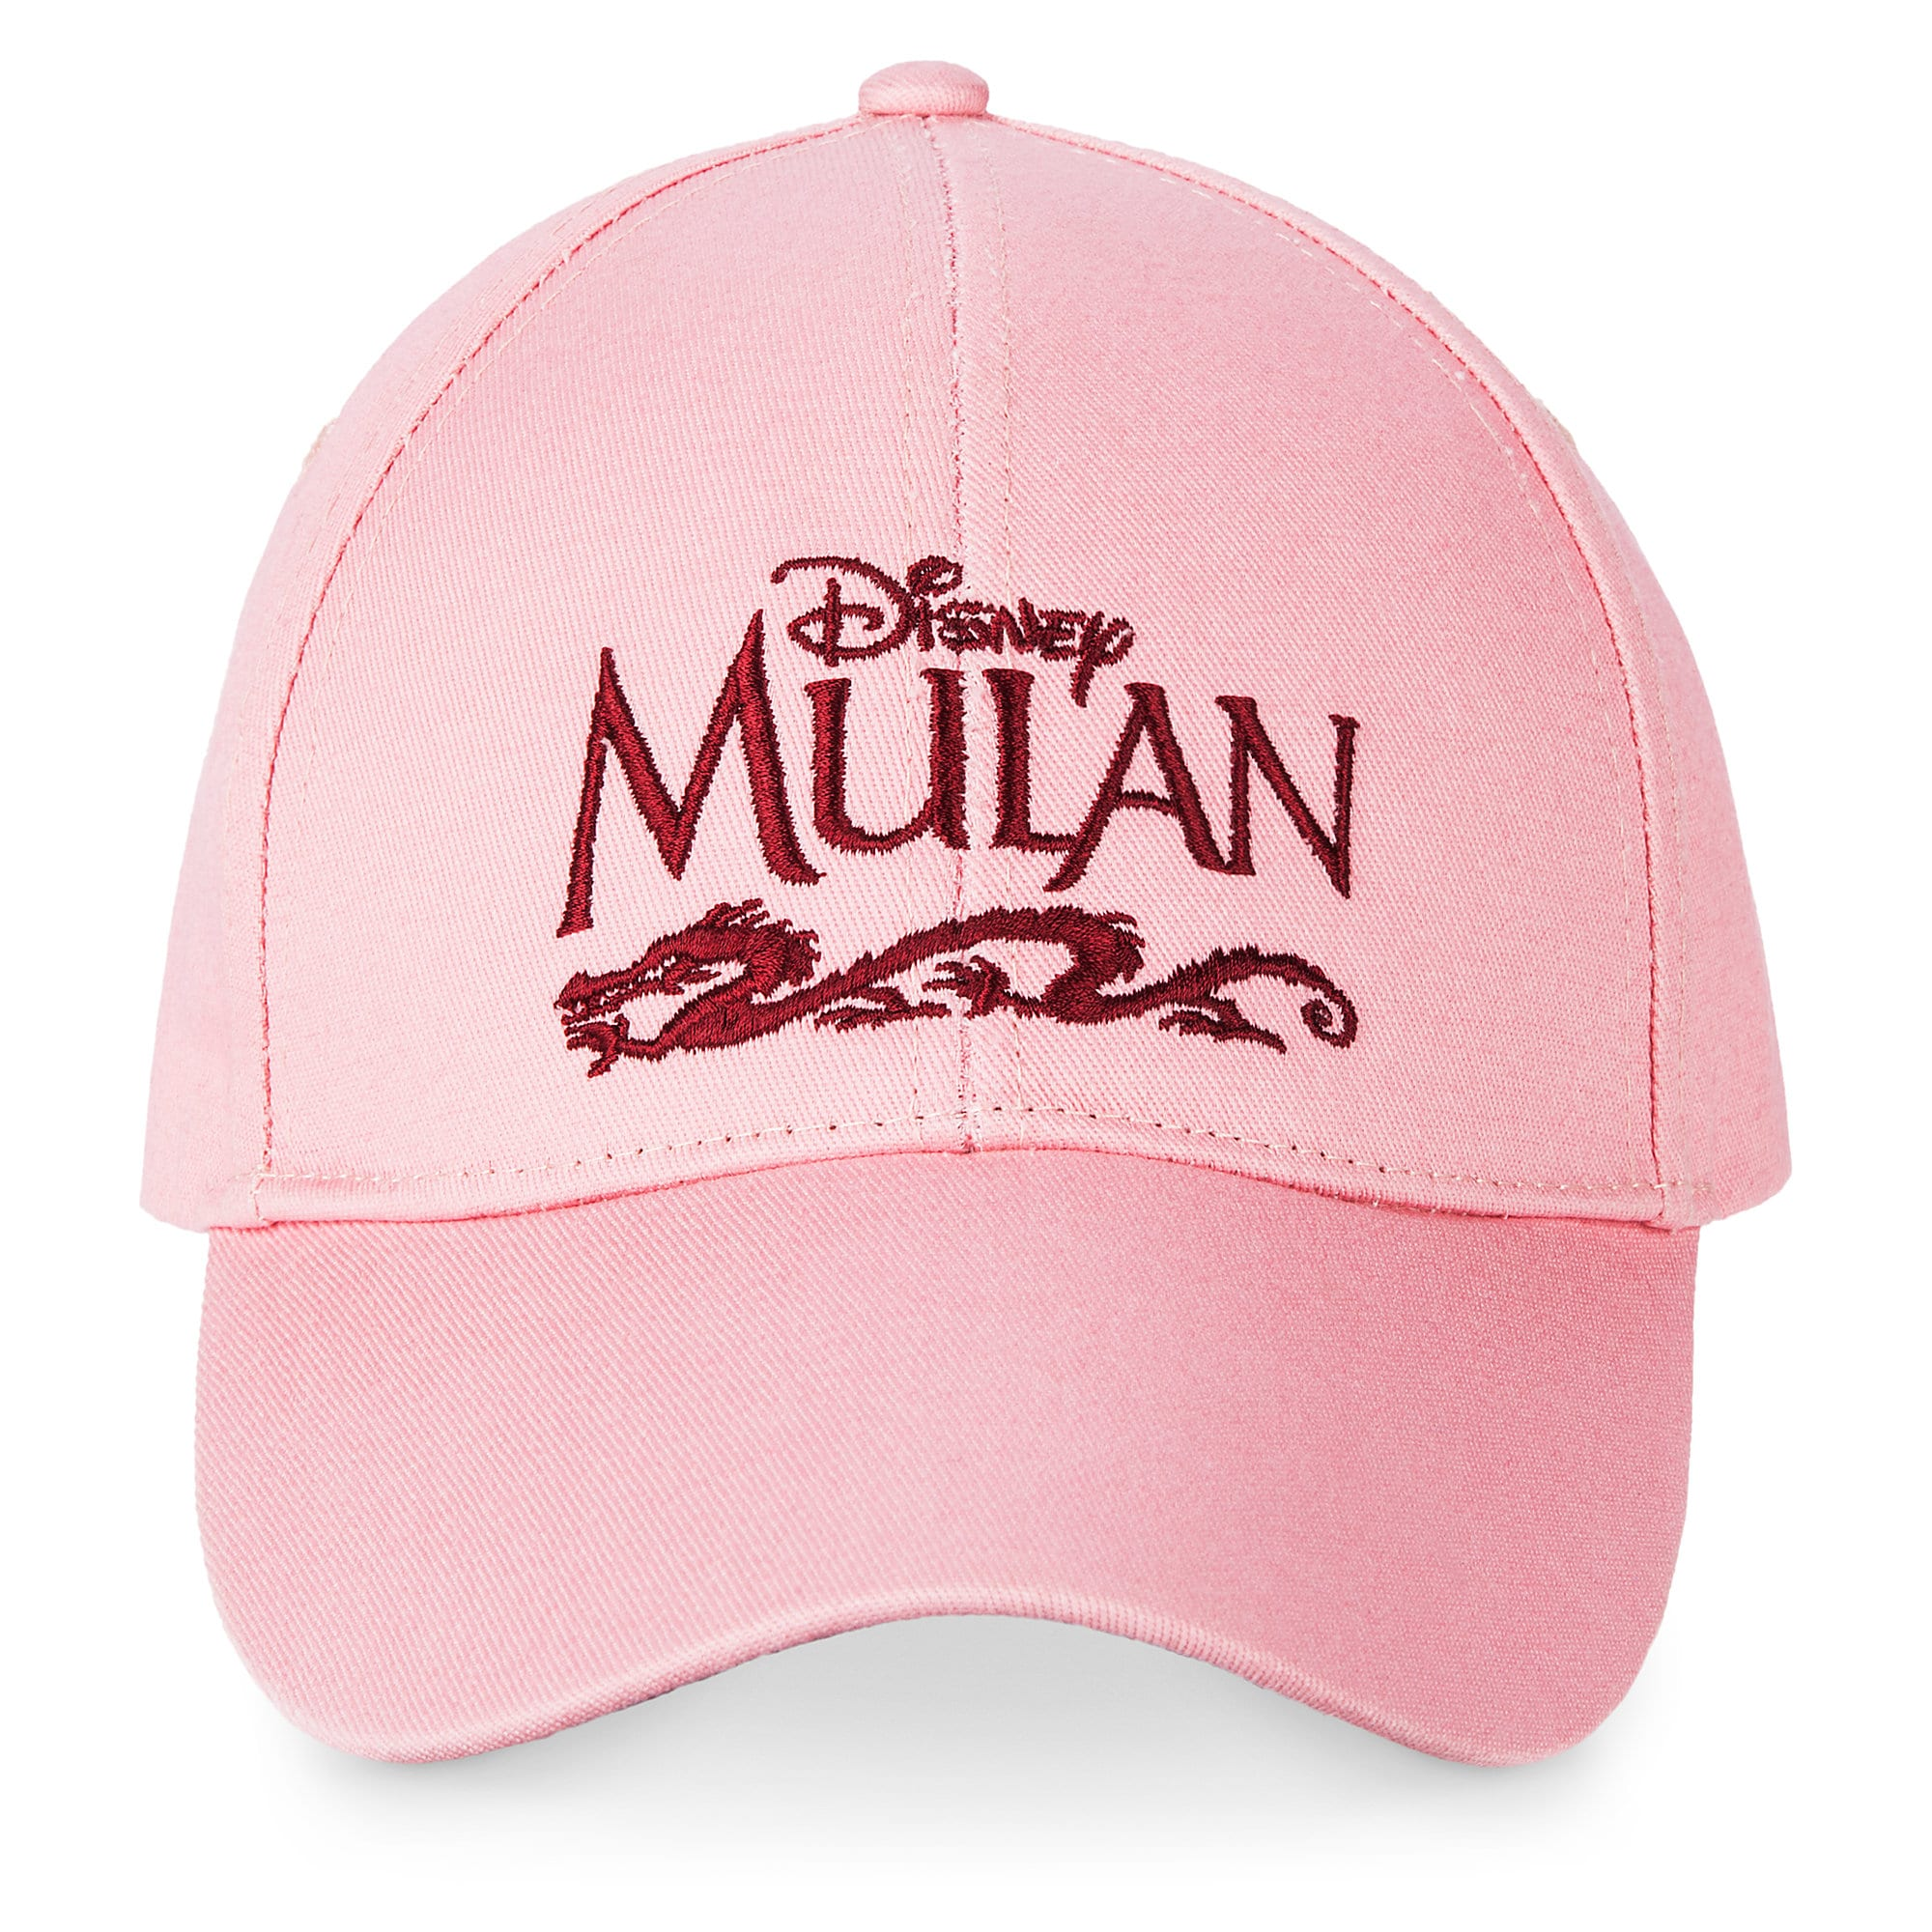 Mulan Baseball Cap for Adults by Cakeworthy